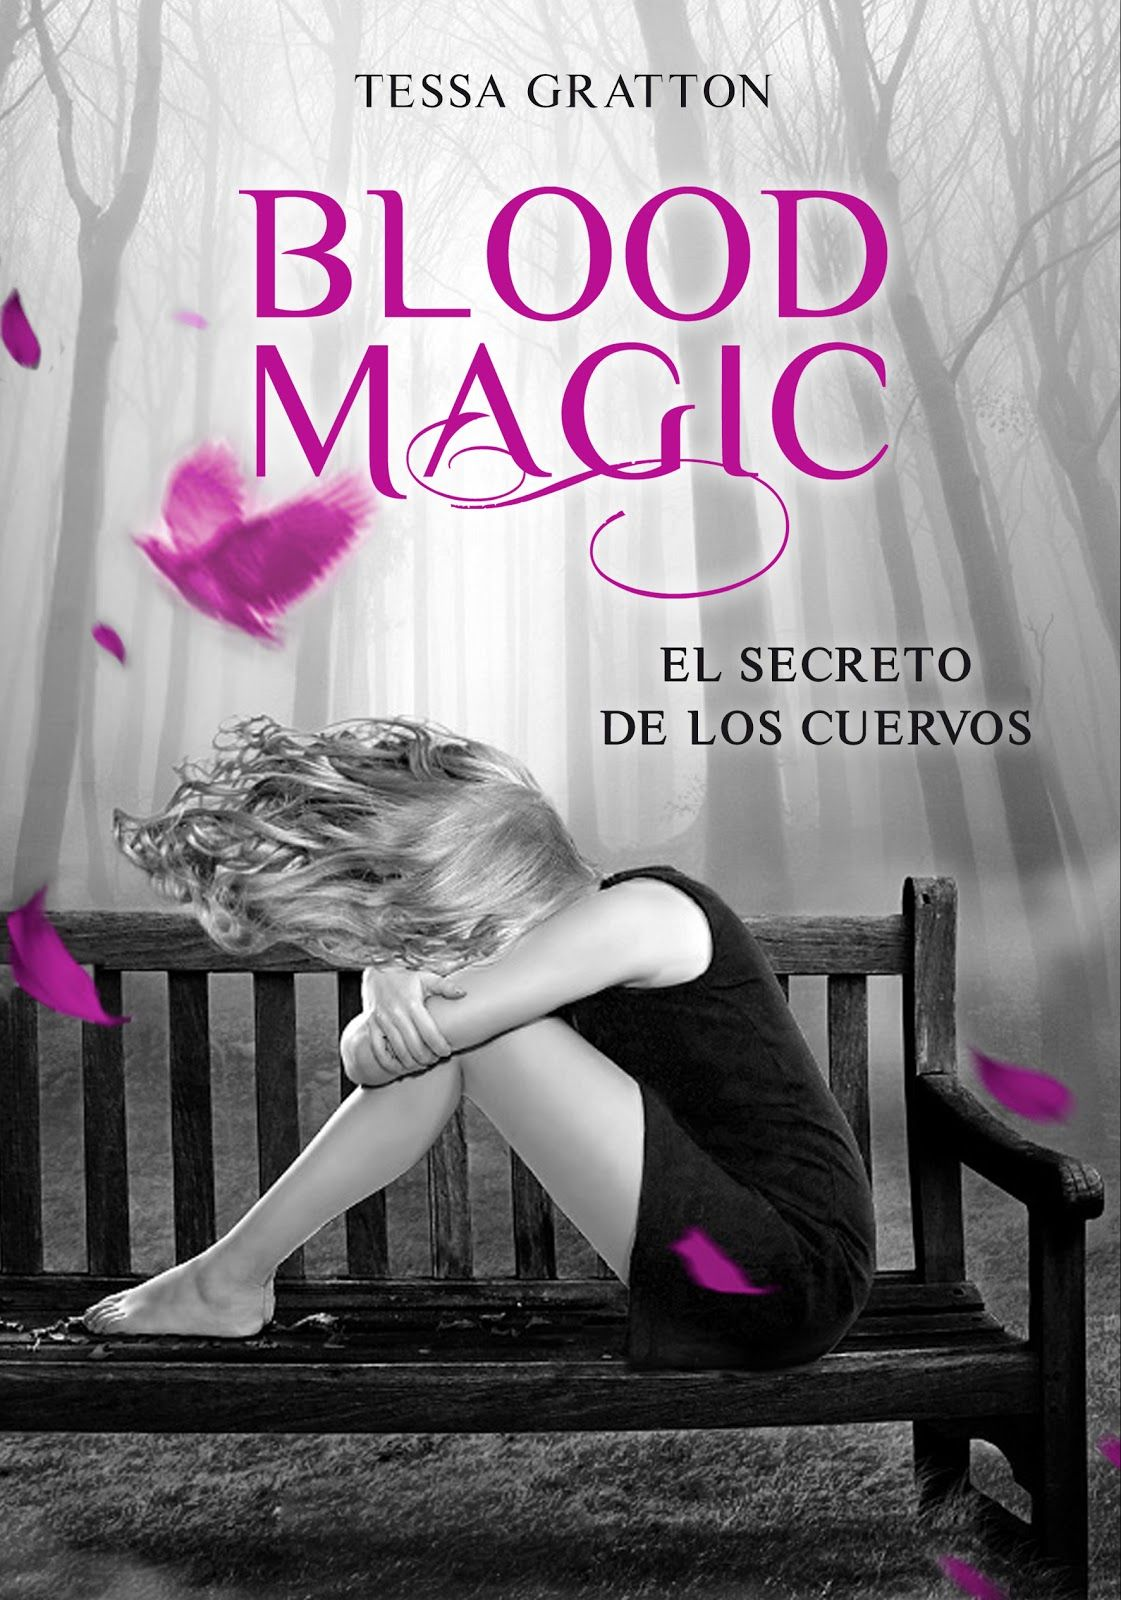 Blood Magic Tessa Gratton Pdf